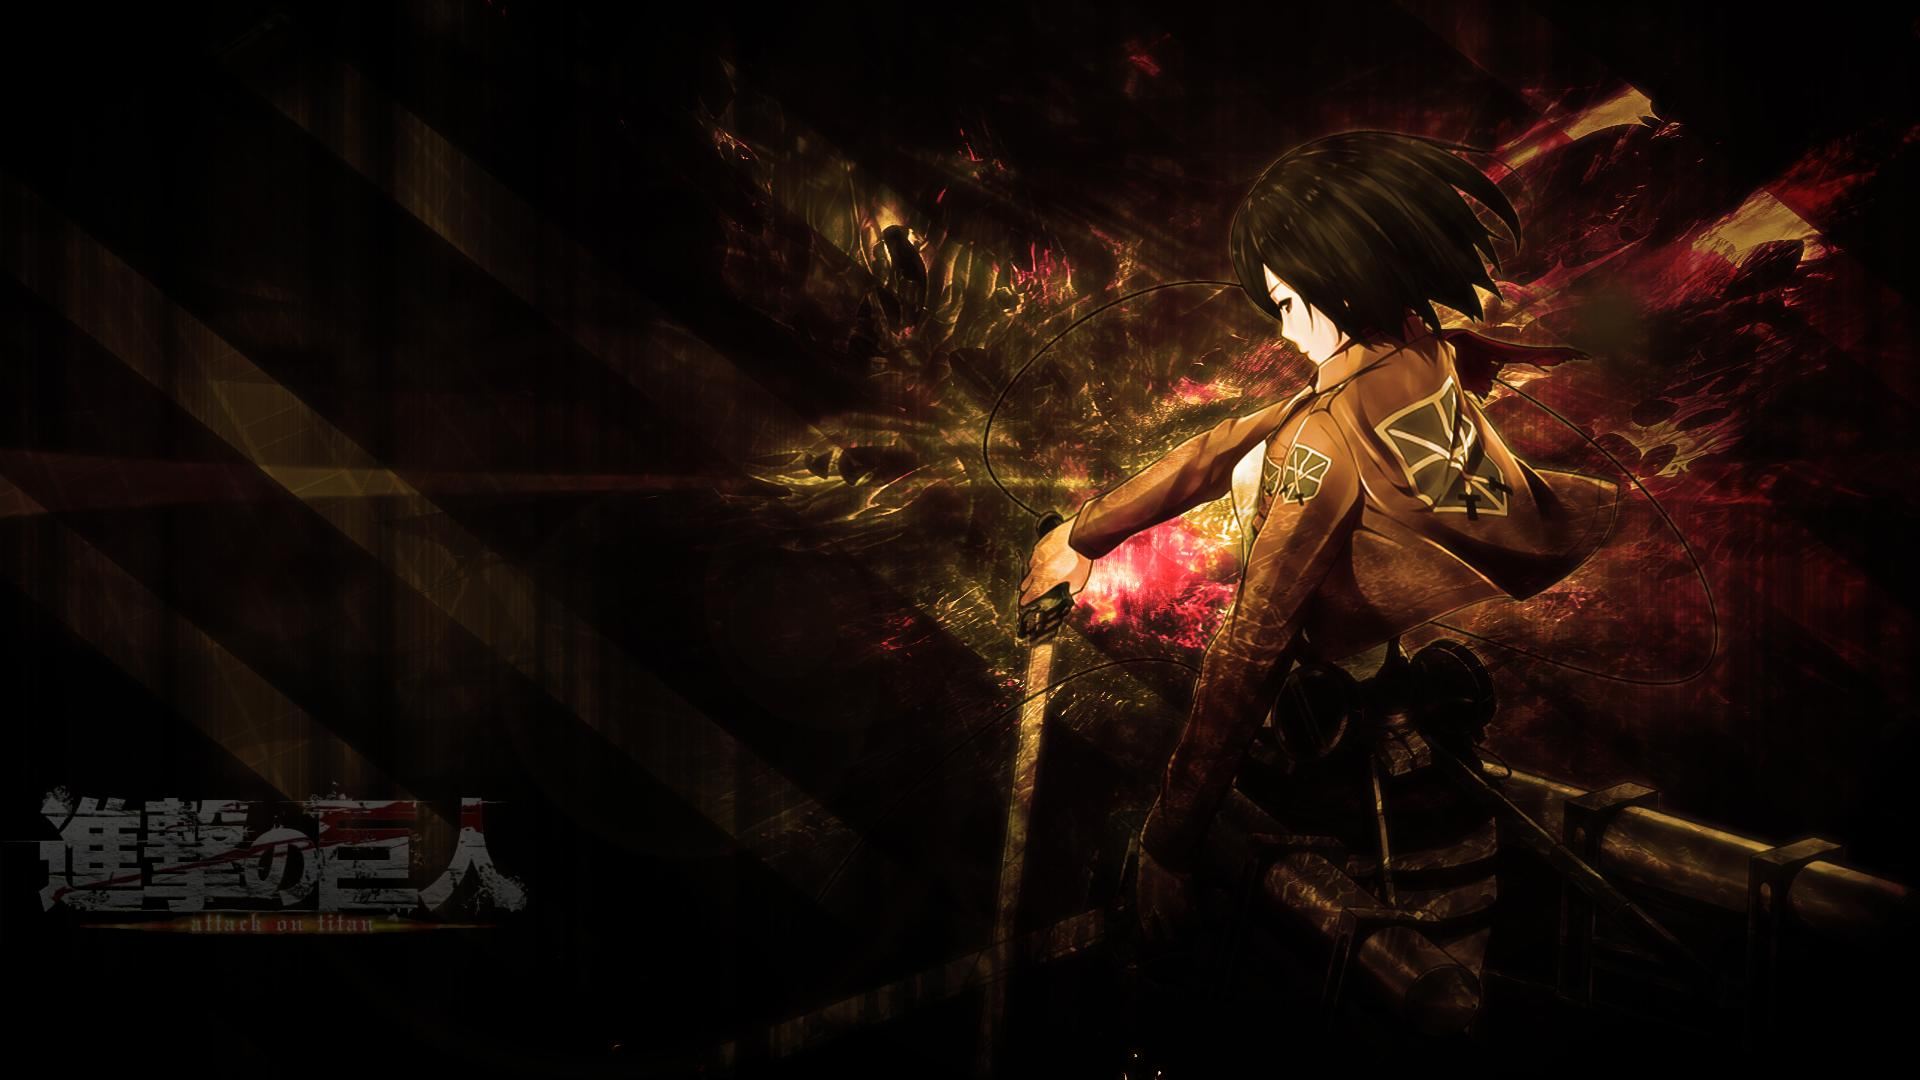 Attack On Titan Mikasa Wallpaper By Skeptec On Deviantart